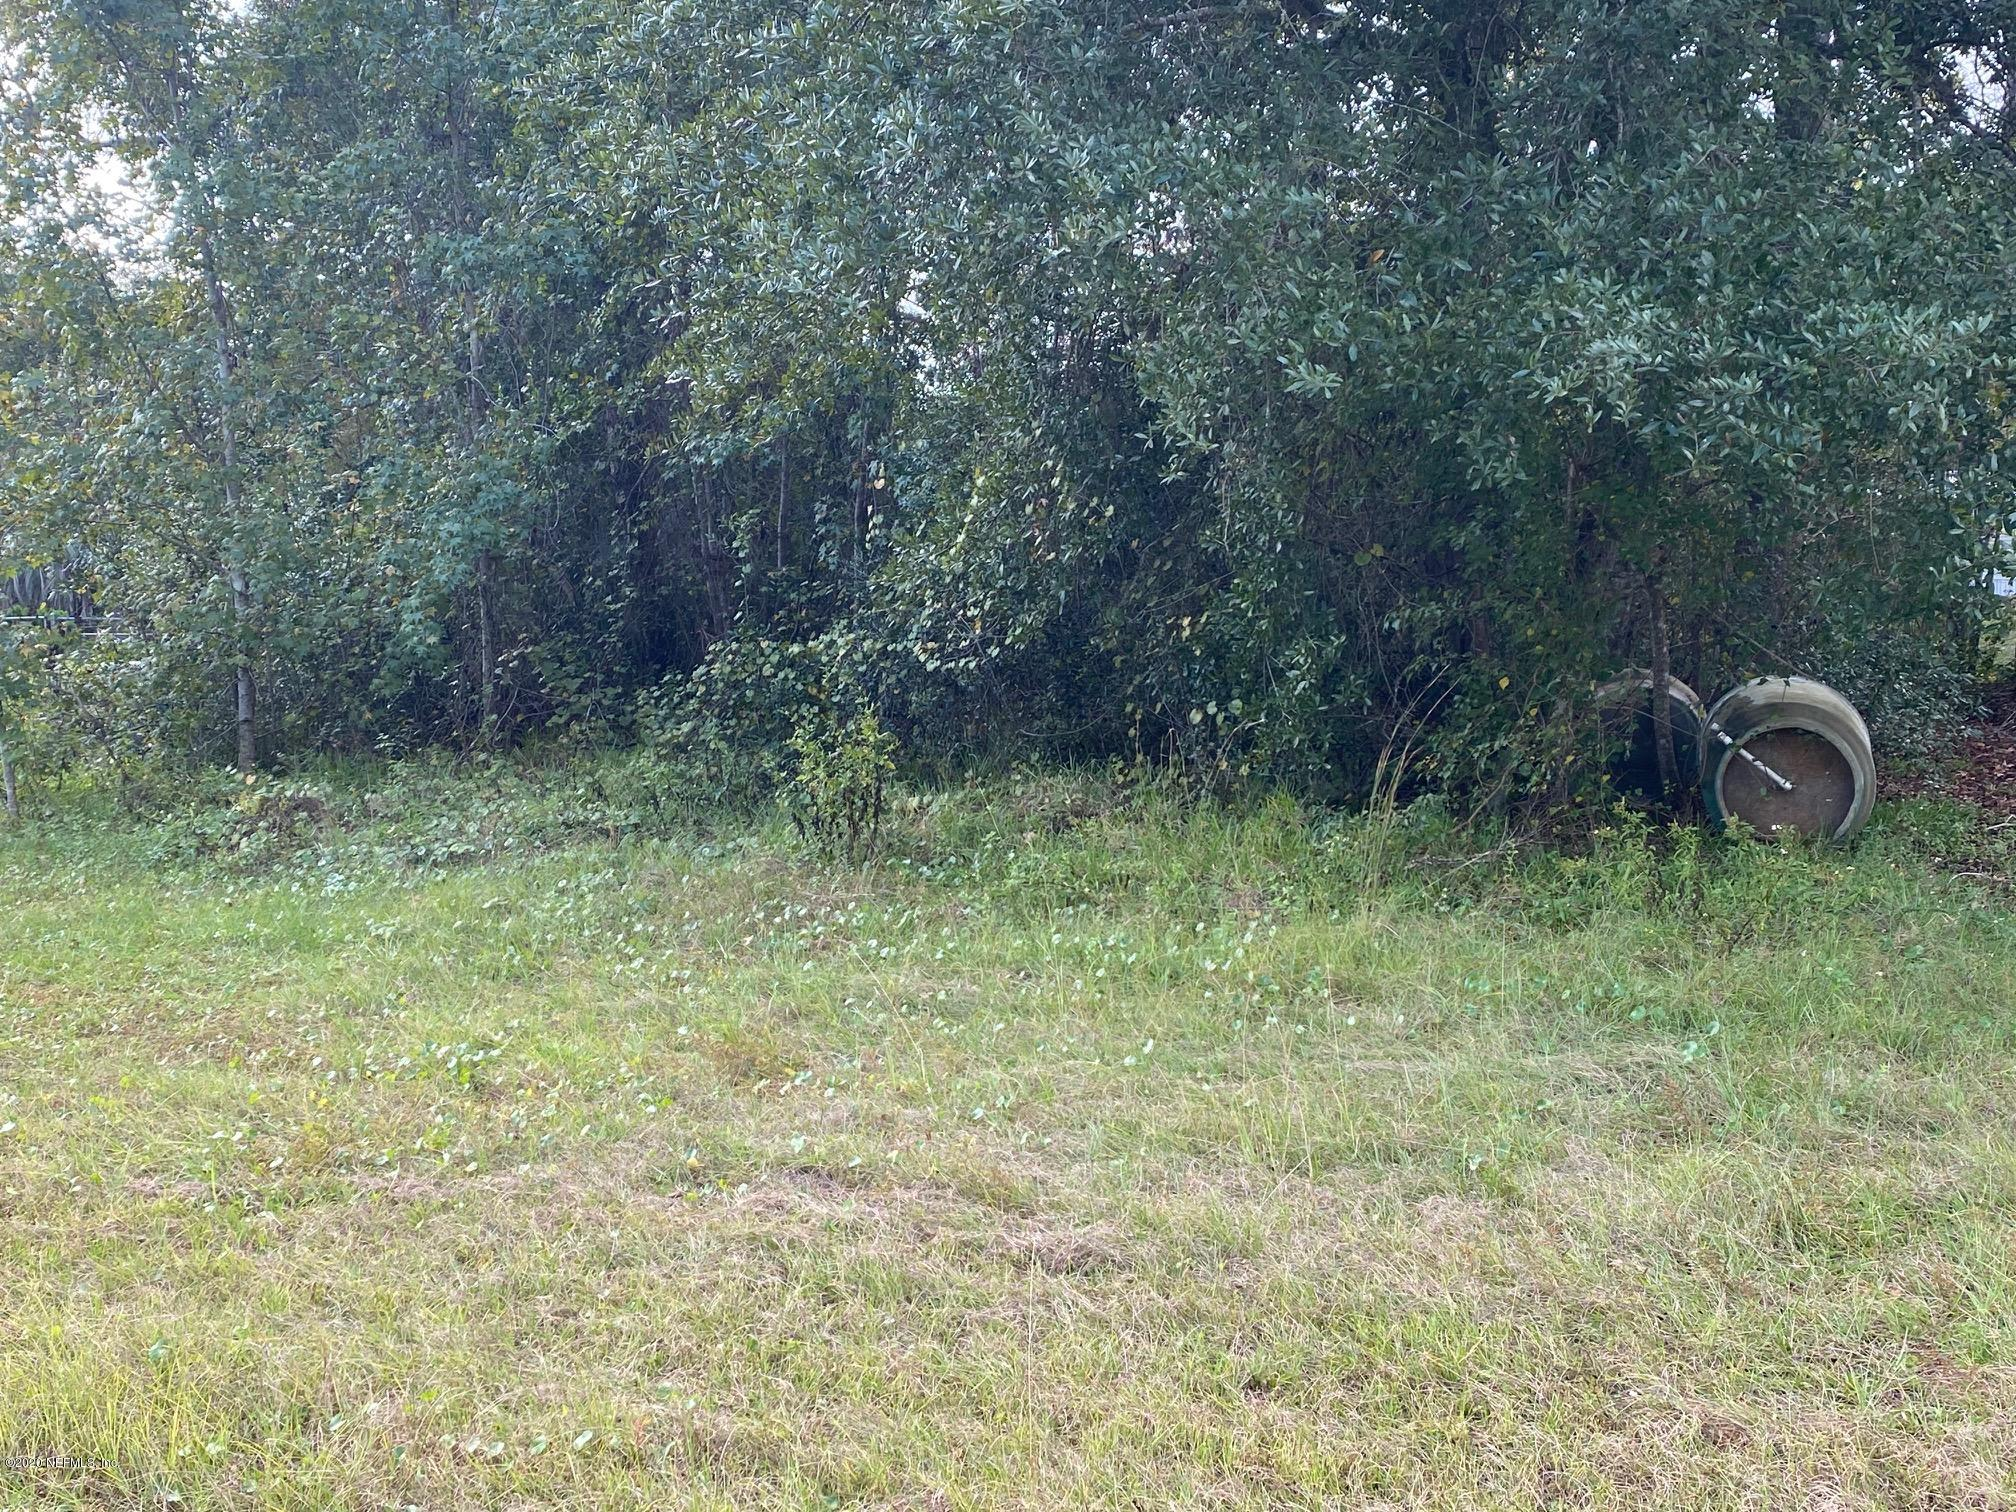 261 TARPON, PALATKA, FLORIDA 32177, ,Vacant land,For sale,TARPON,1080396